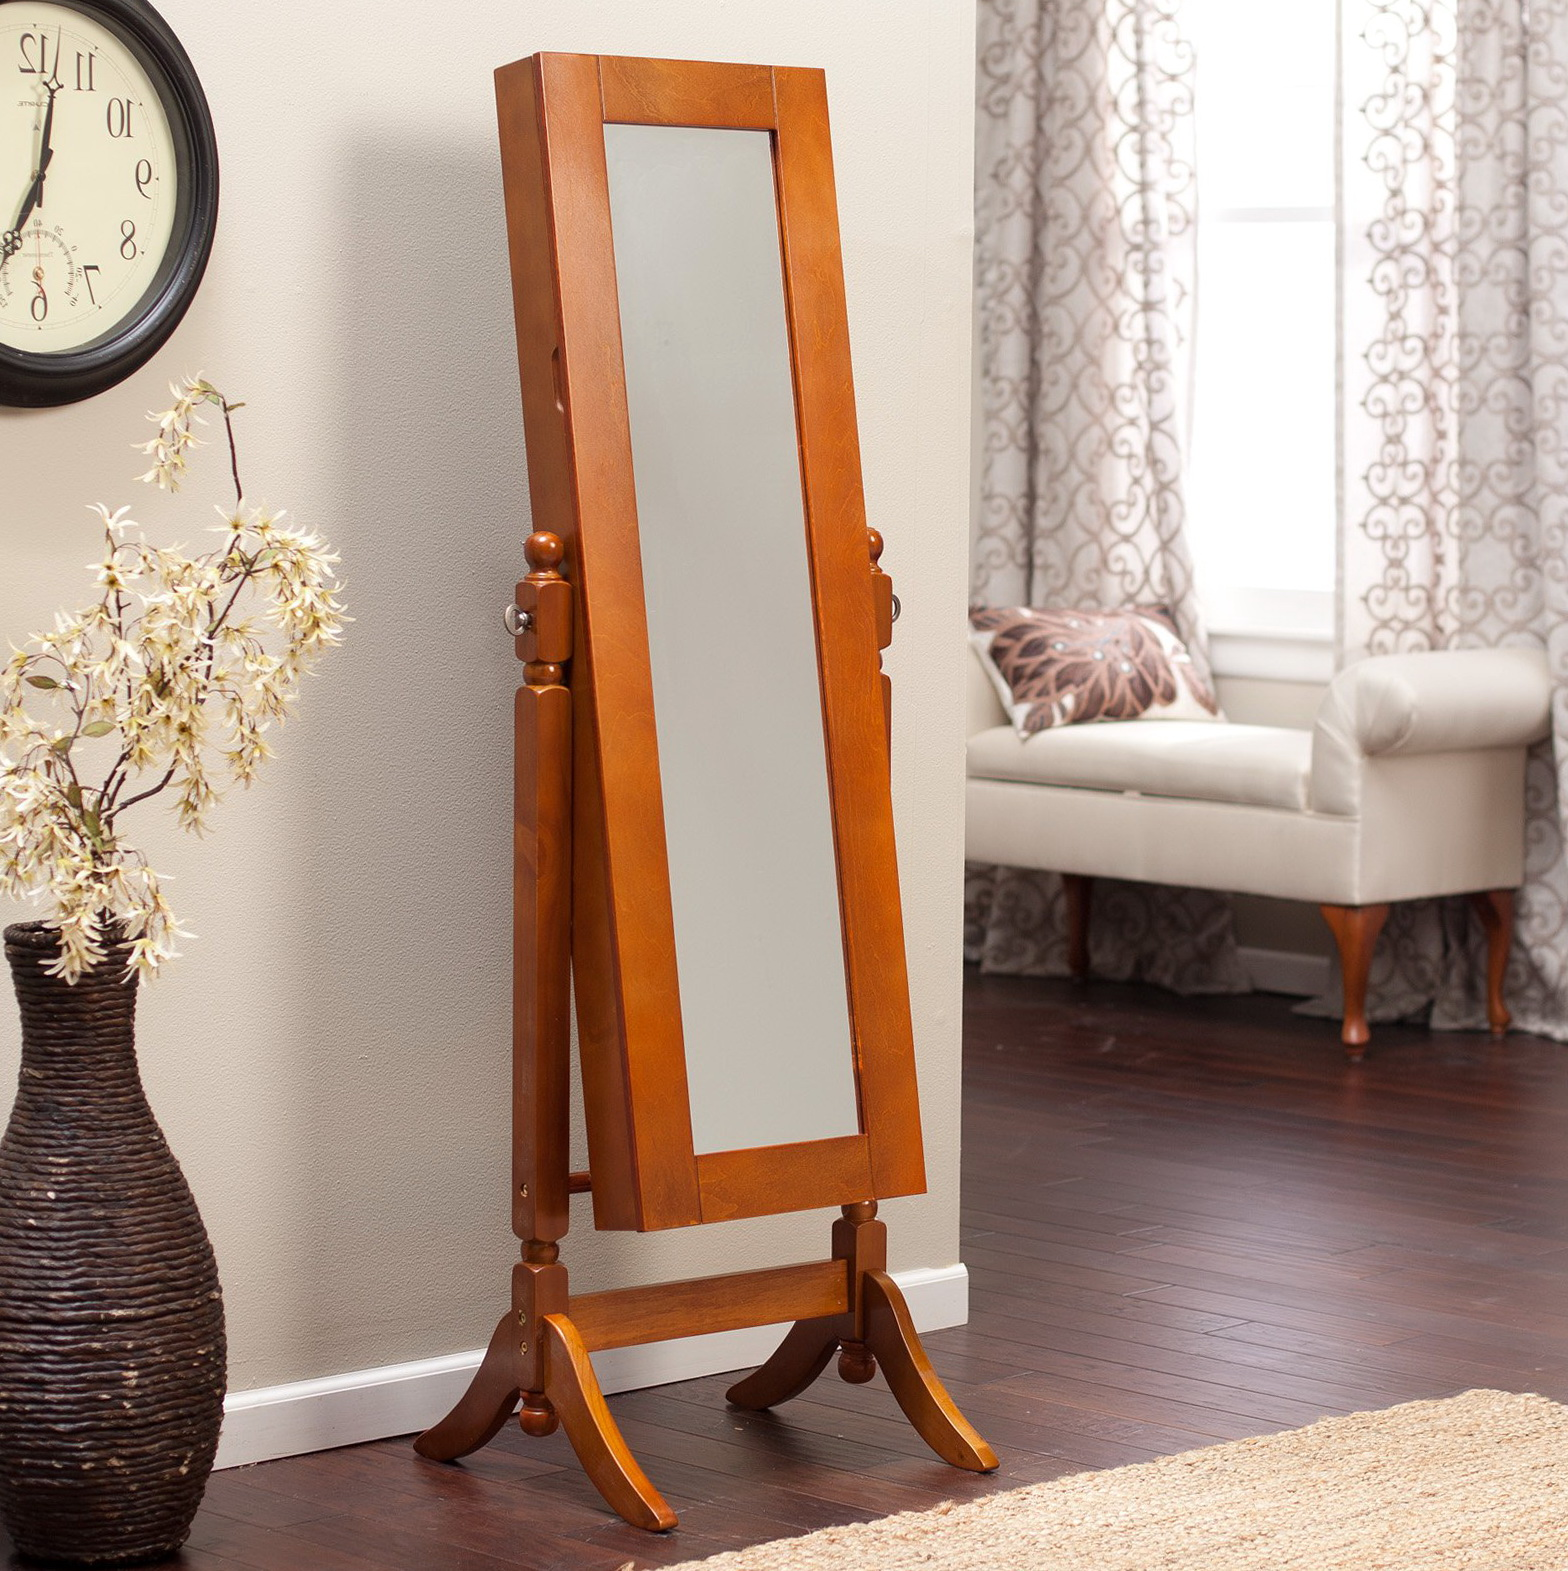 Oak Jewelry Armoire Mirror